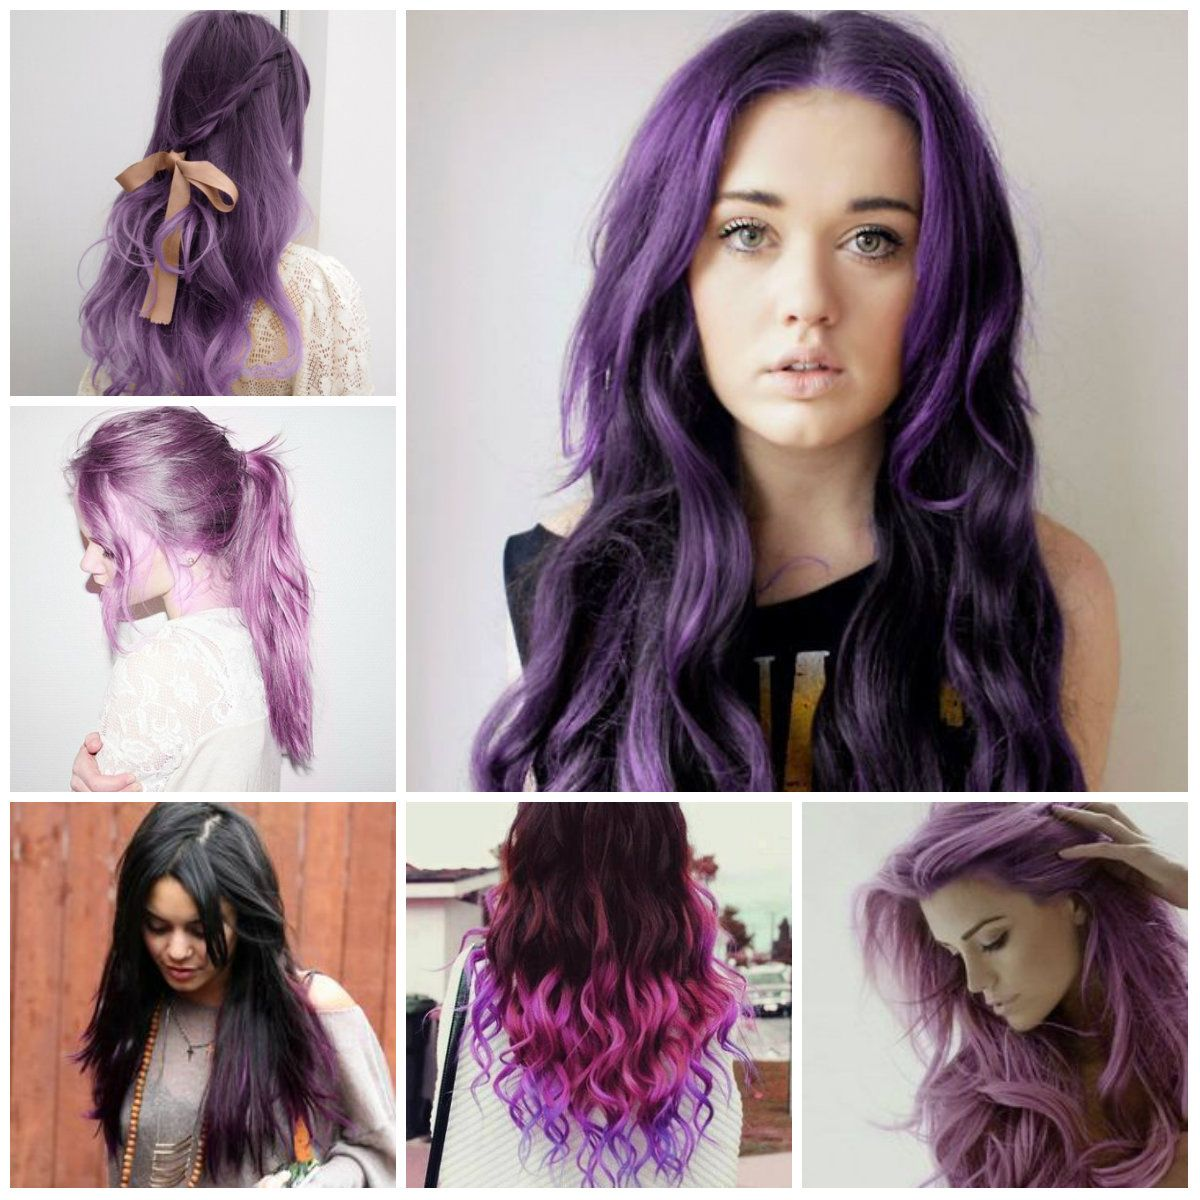 Latest Hair Color Ideas 2016   Trendy Hairstyles 2015   2016 for long   medium andLatest Hair Color Ideas 2016   Trendy Hairstyles 2015   2016 for  . Hair Colour Ideas For Long Hair 2015. Home Design Ideas